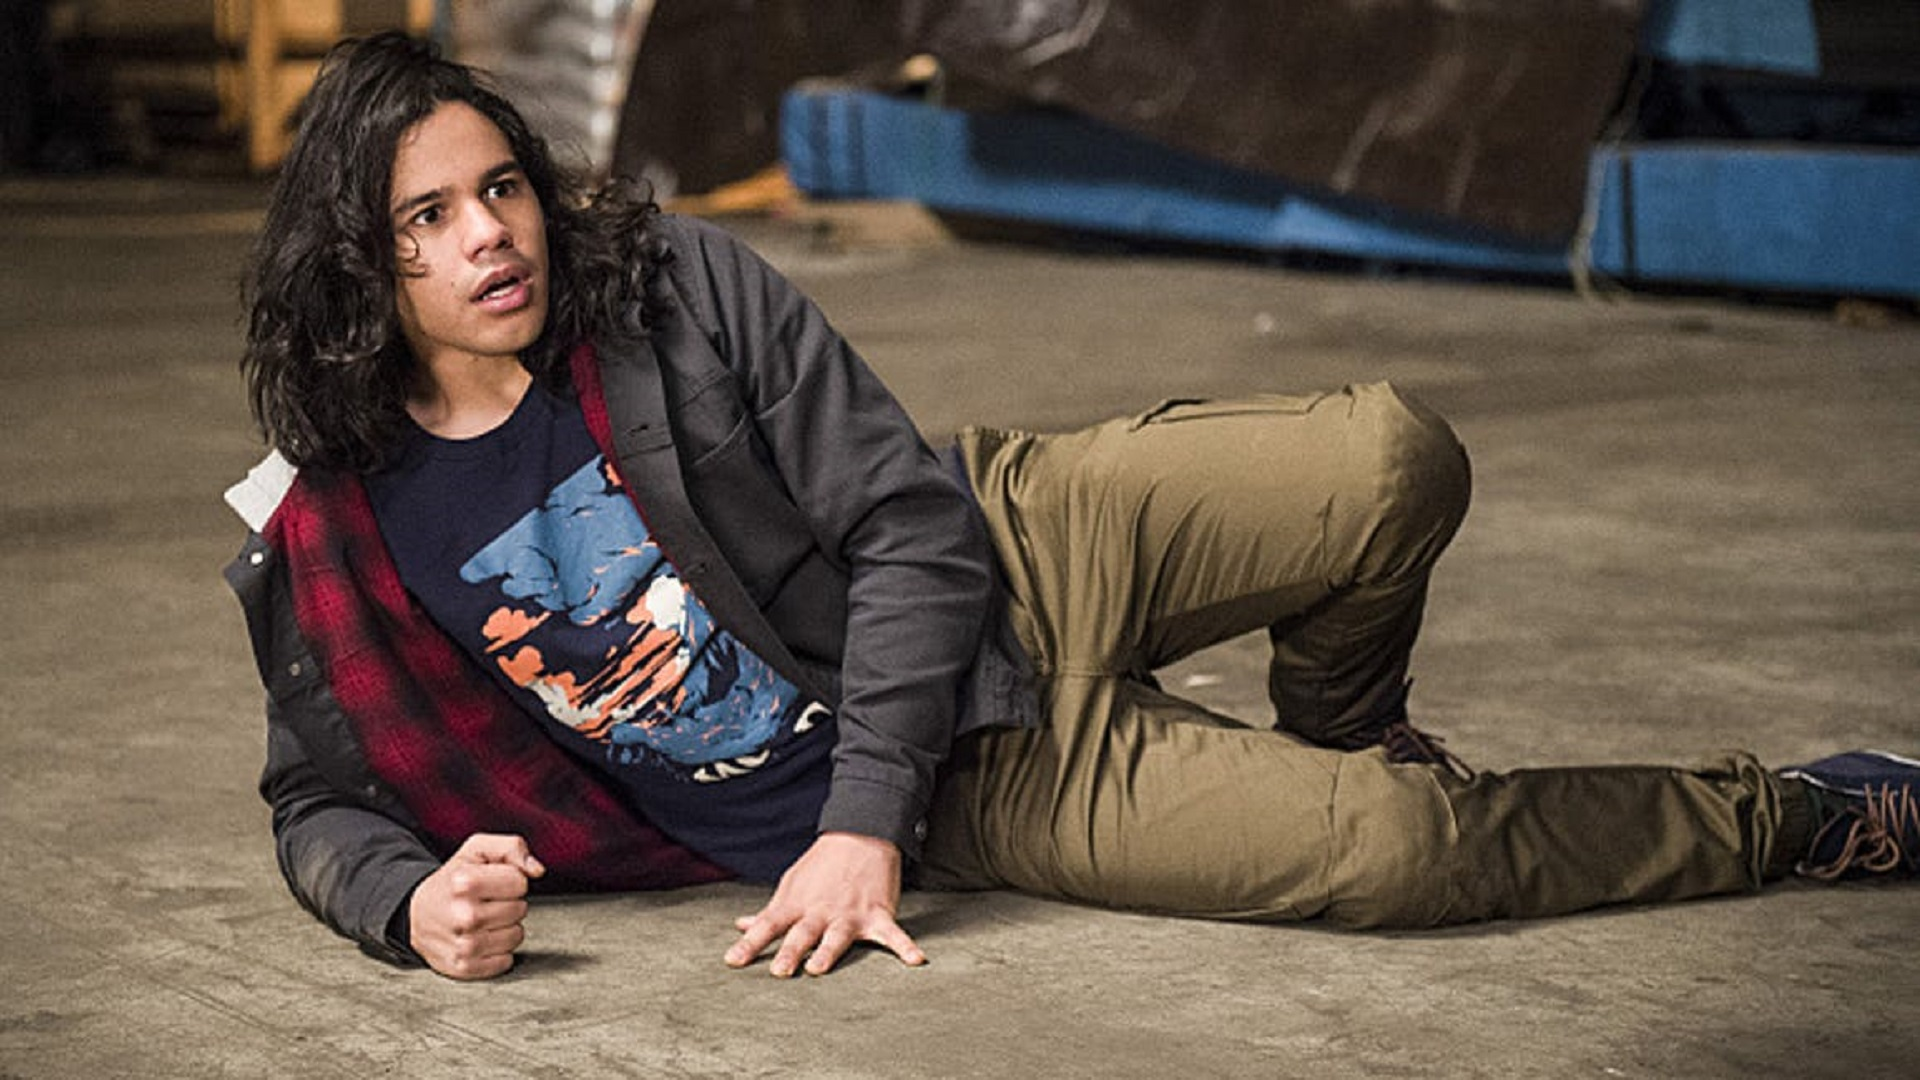 Carlos Valdes, Cisco/Vibe on CW's The Flash, Possibly Getting a